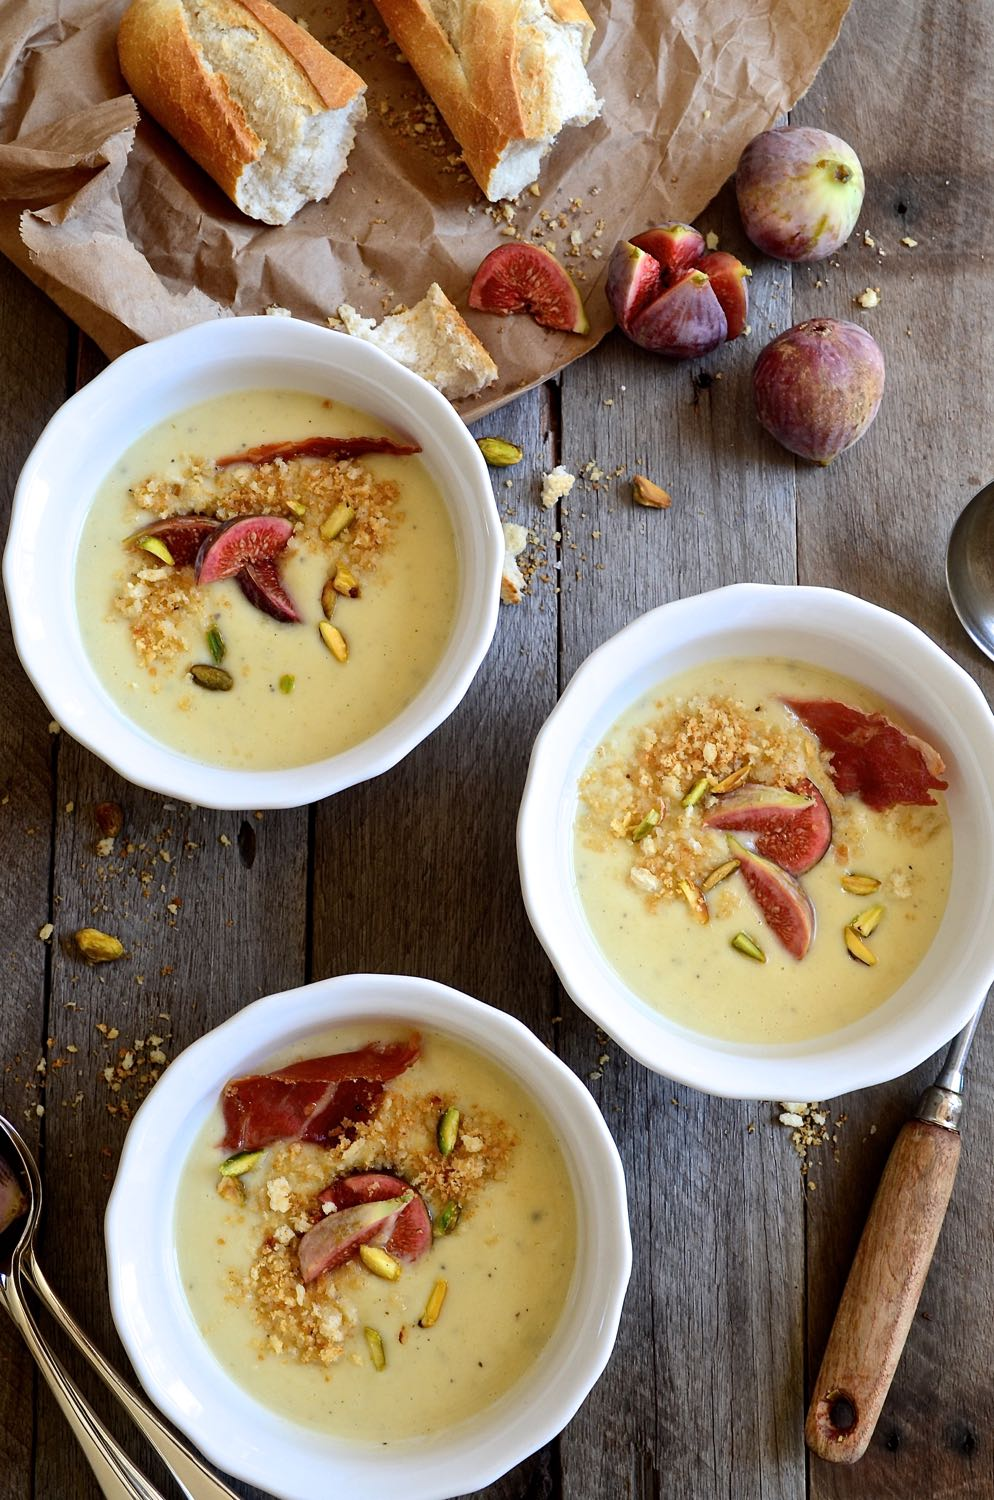 Creamed Parsnip and apple soup with blue cheese & figs | Bibbyskitchen